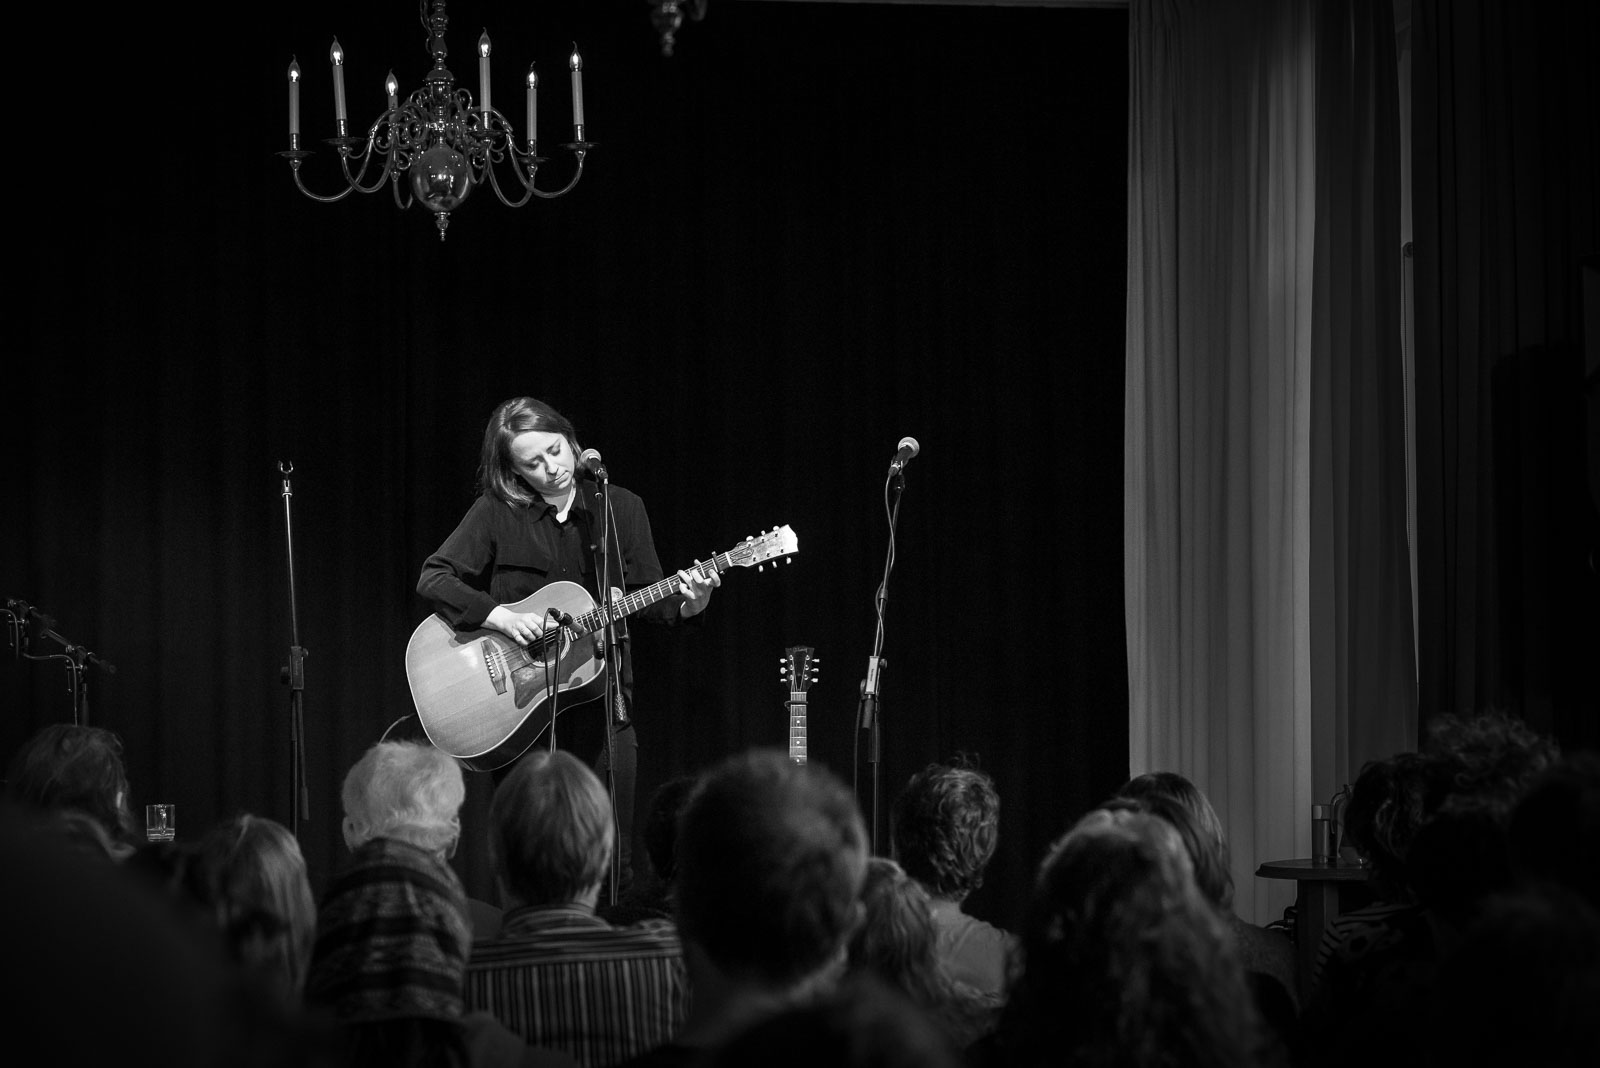 Stephanie Struijk Parelsessies in de Parel van ZuilenConcertfoto